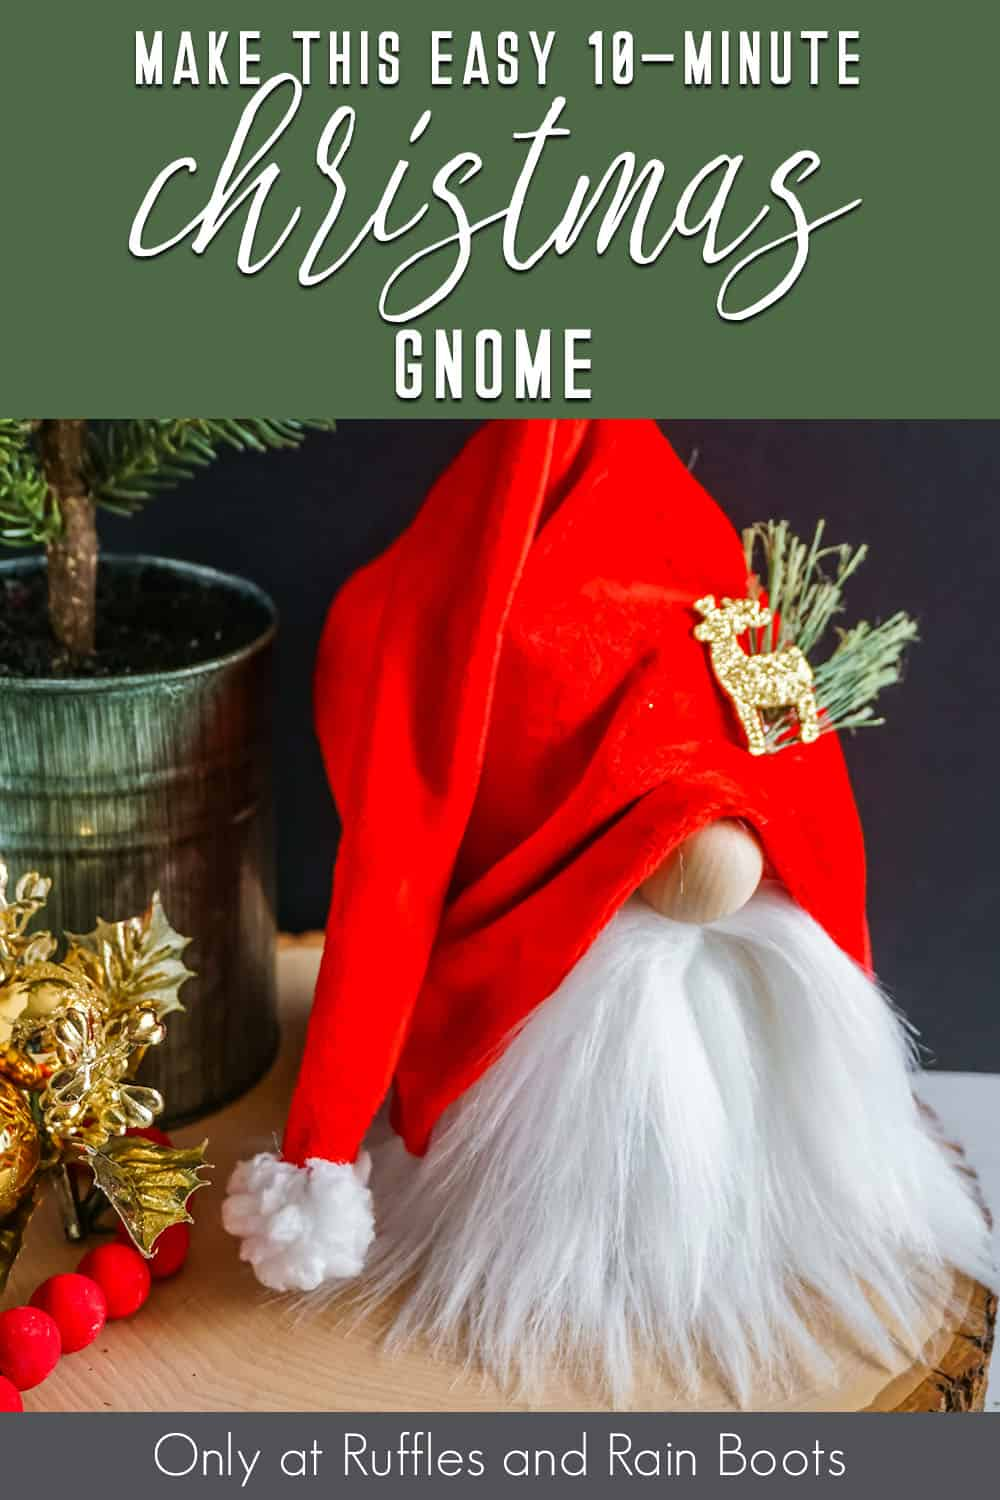 beginner diy christmas gnome with text which reads make this easy 10-minute christmas gnome